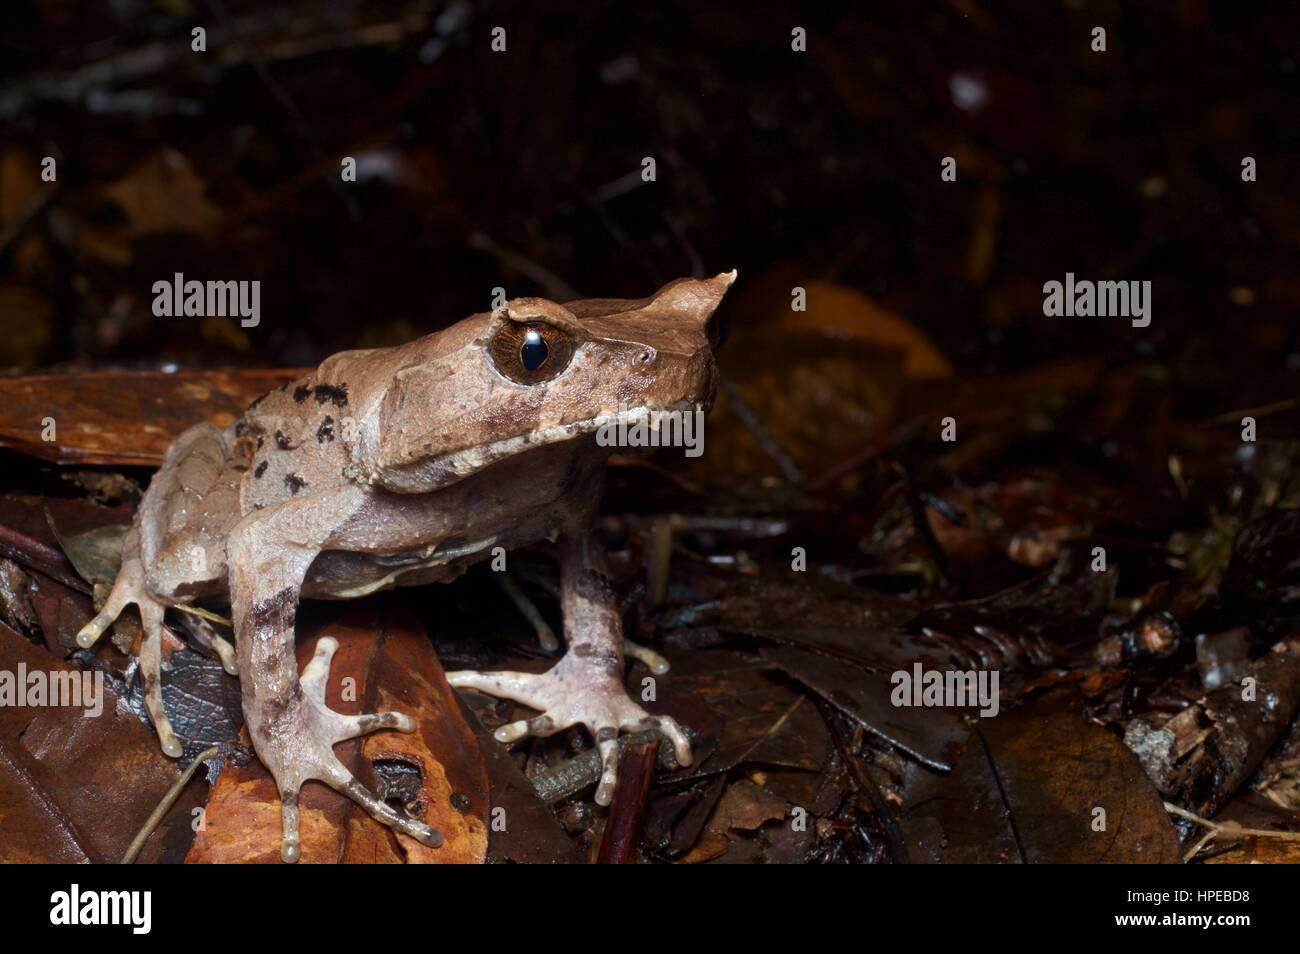 A grumpy-looking Perak Horned Frog (Xenophrys aceras) in Fraser's Hill, Pahang, Malaysia - Stock Image